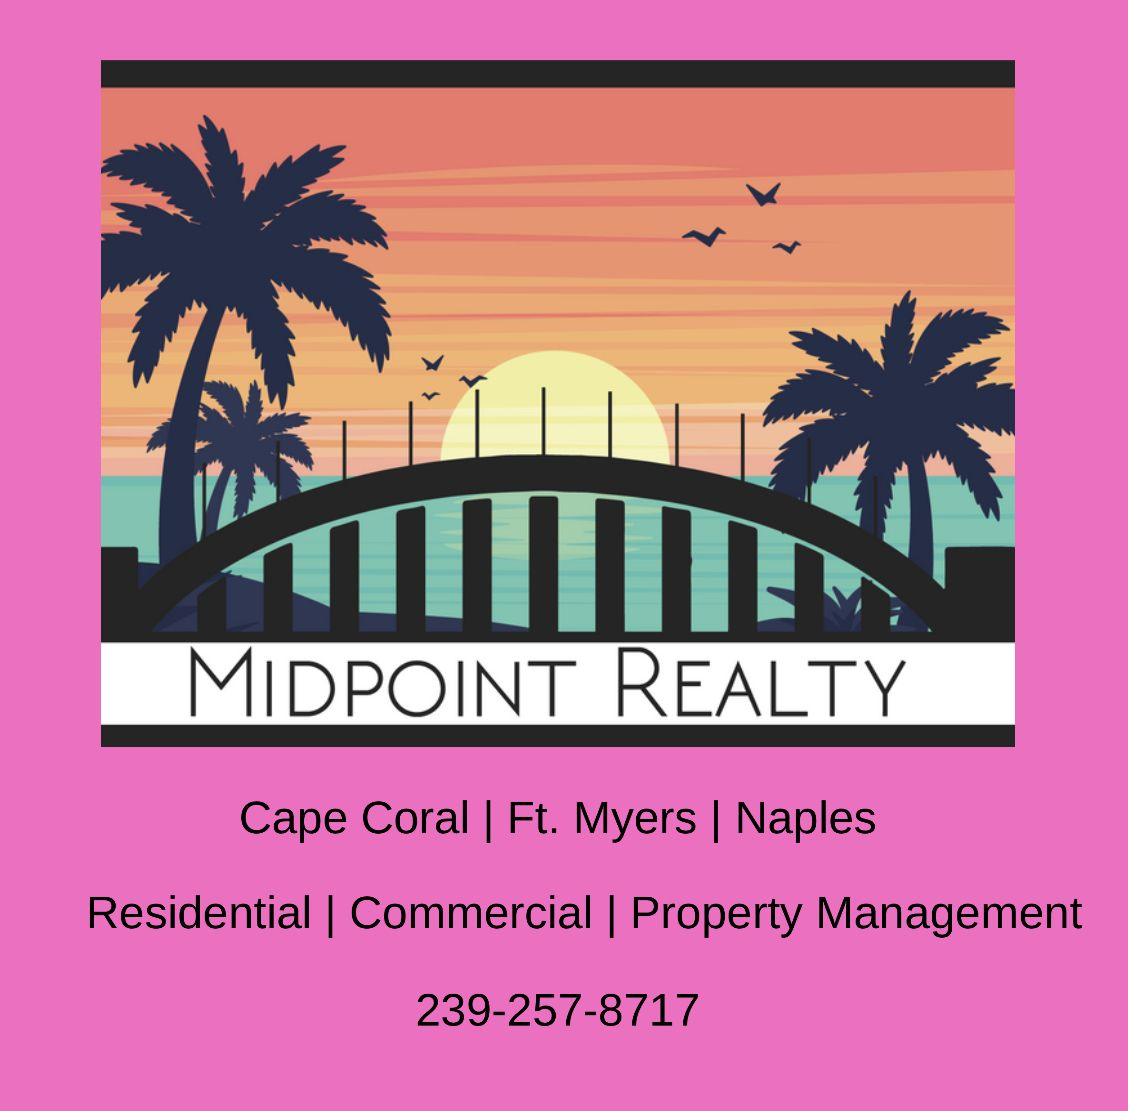 Call Midpoint Realty For All Your Real Estate Needs 239 257 8717 We Would Love To Work With You Cape Coral Real Estate Condos For Sale